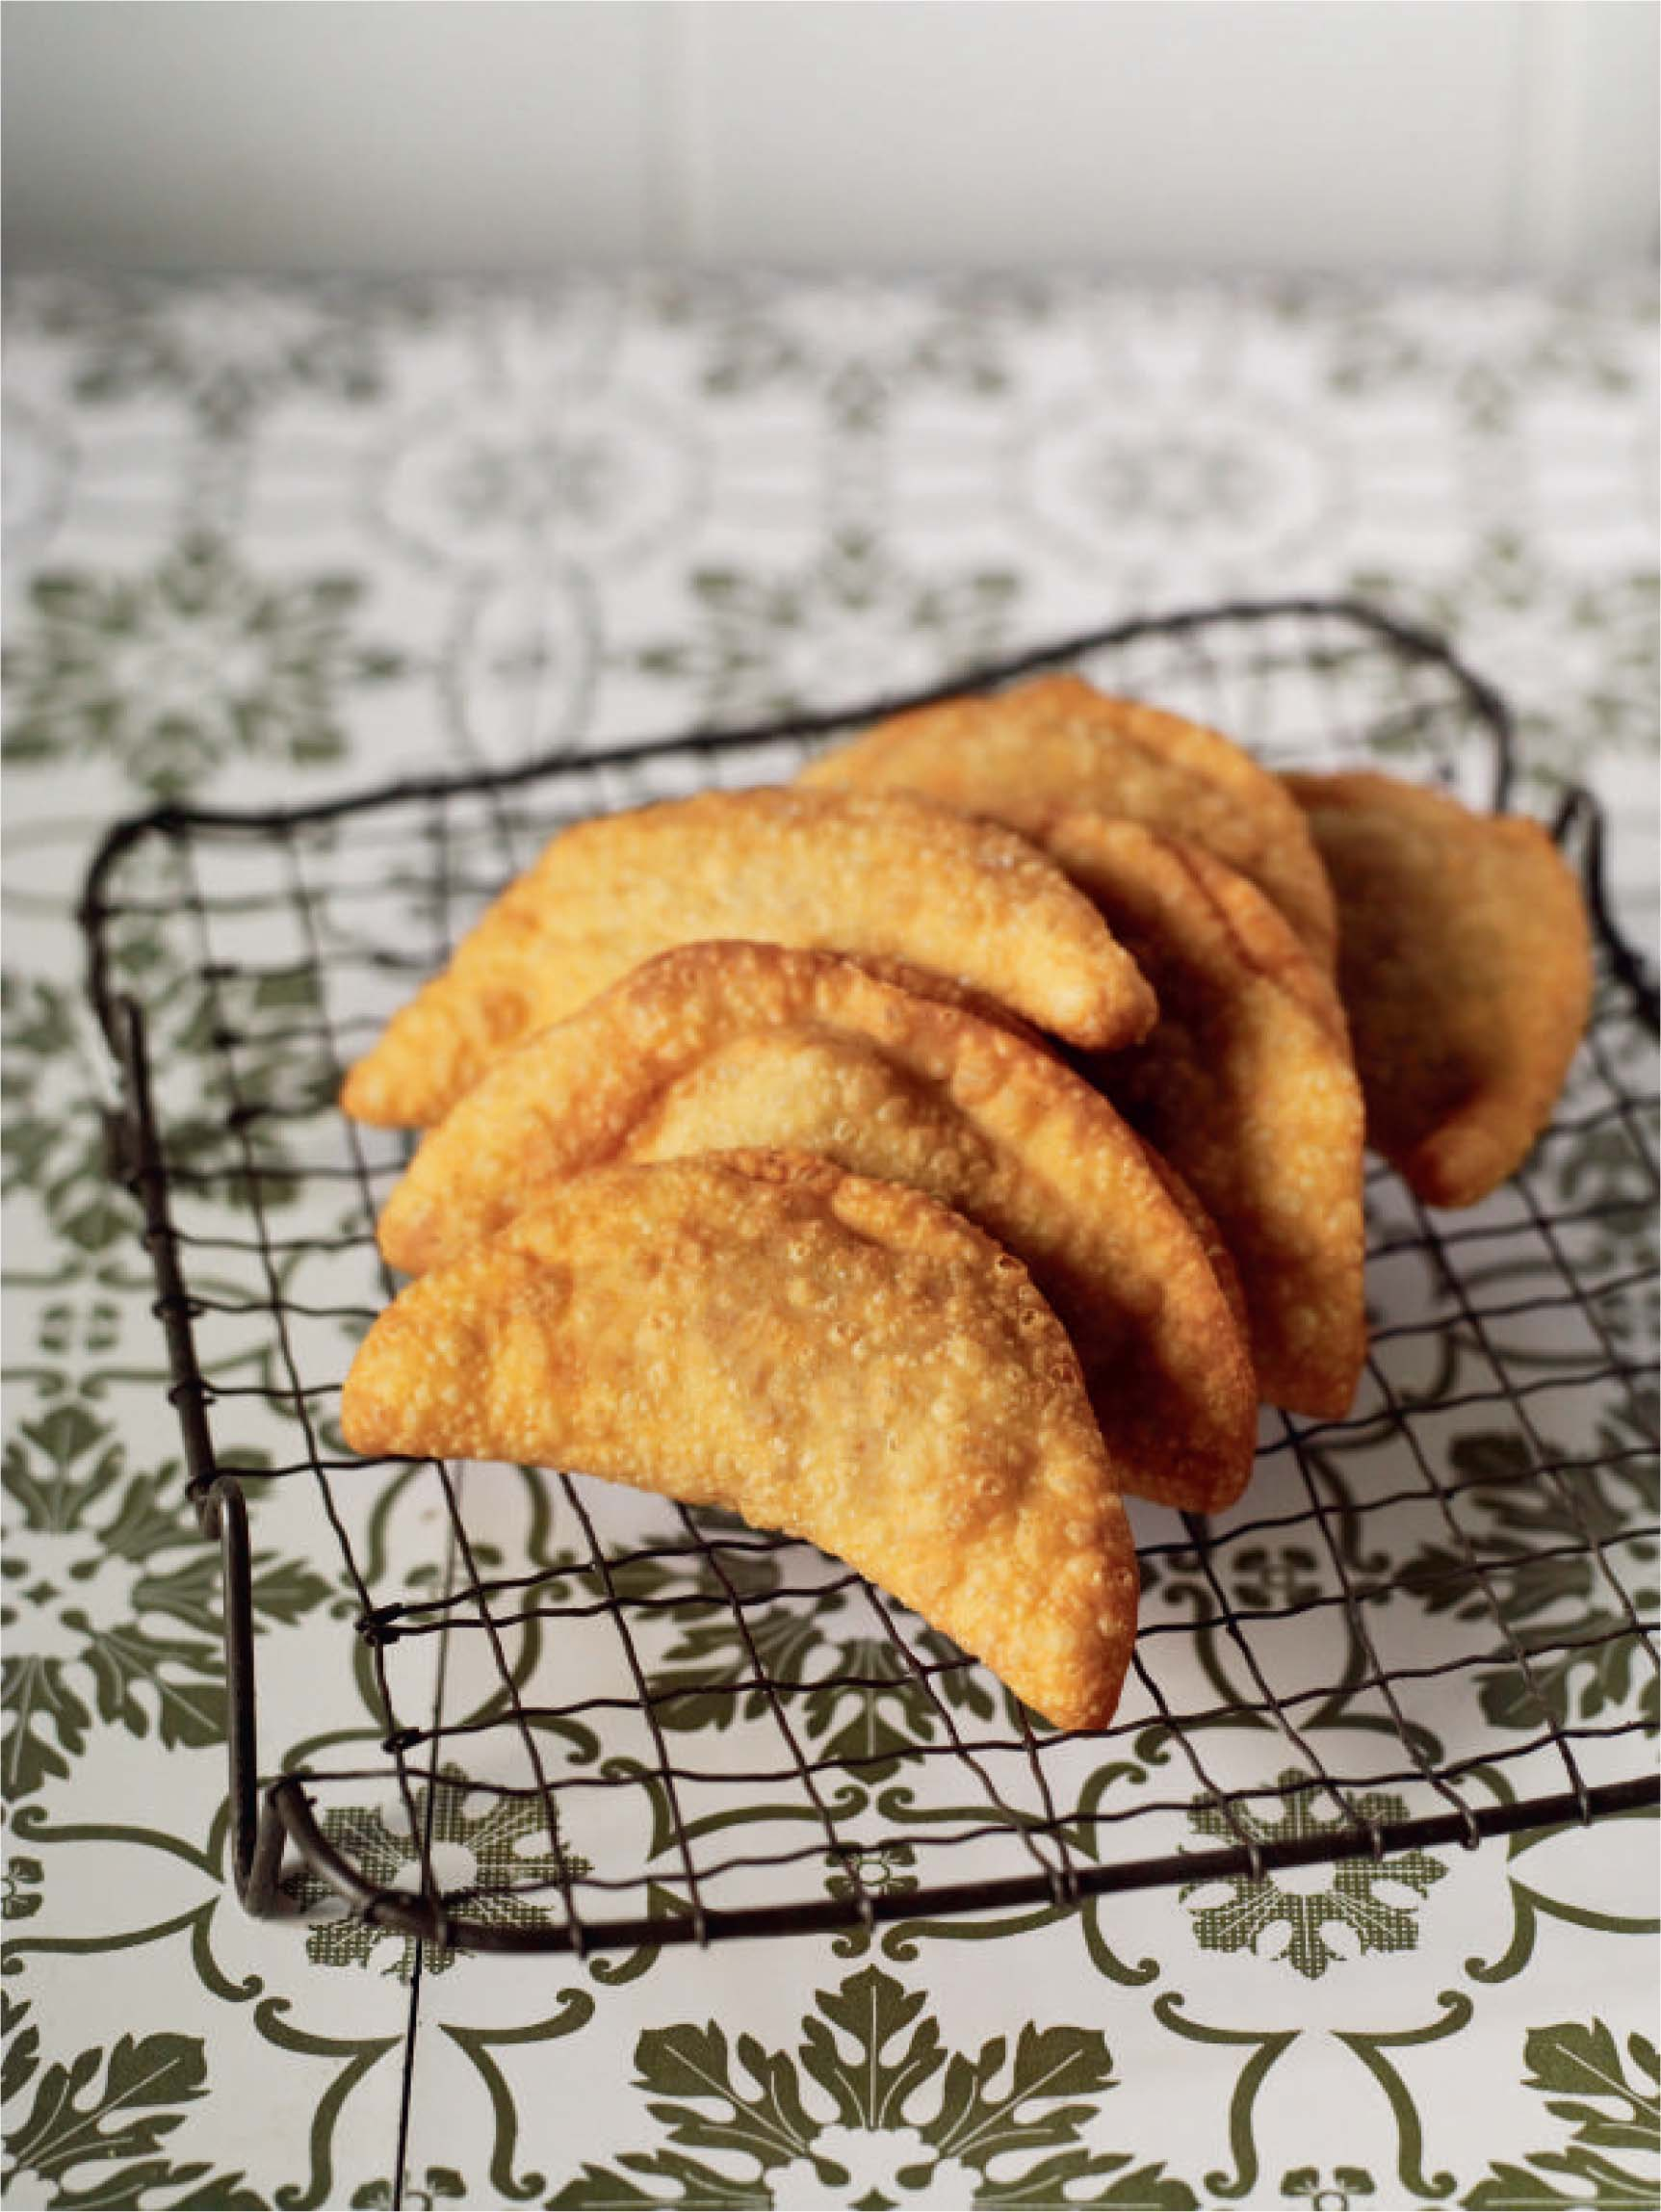 Fried pork crescents